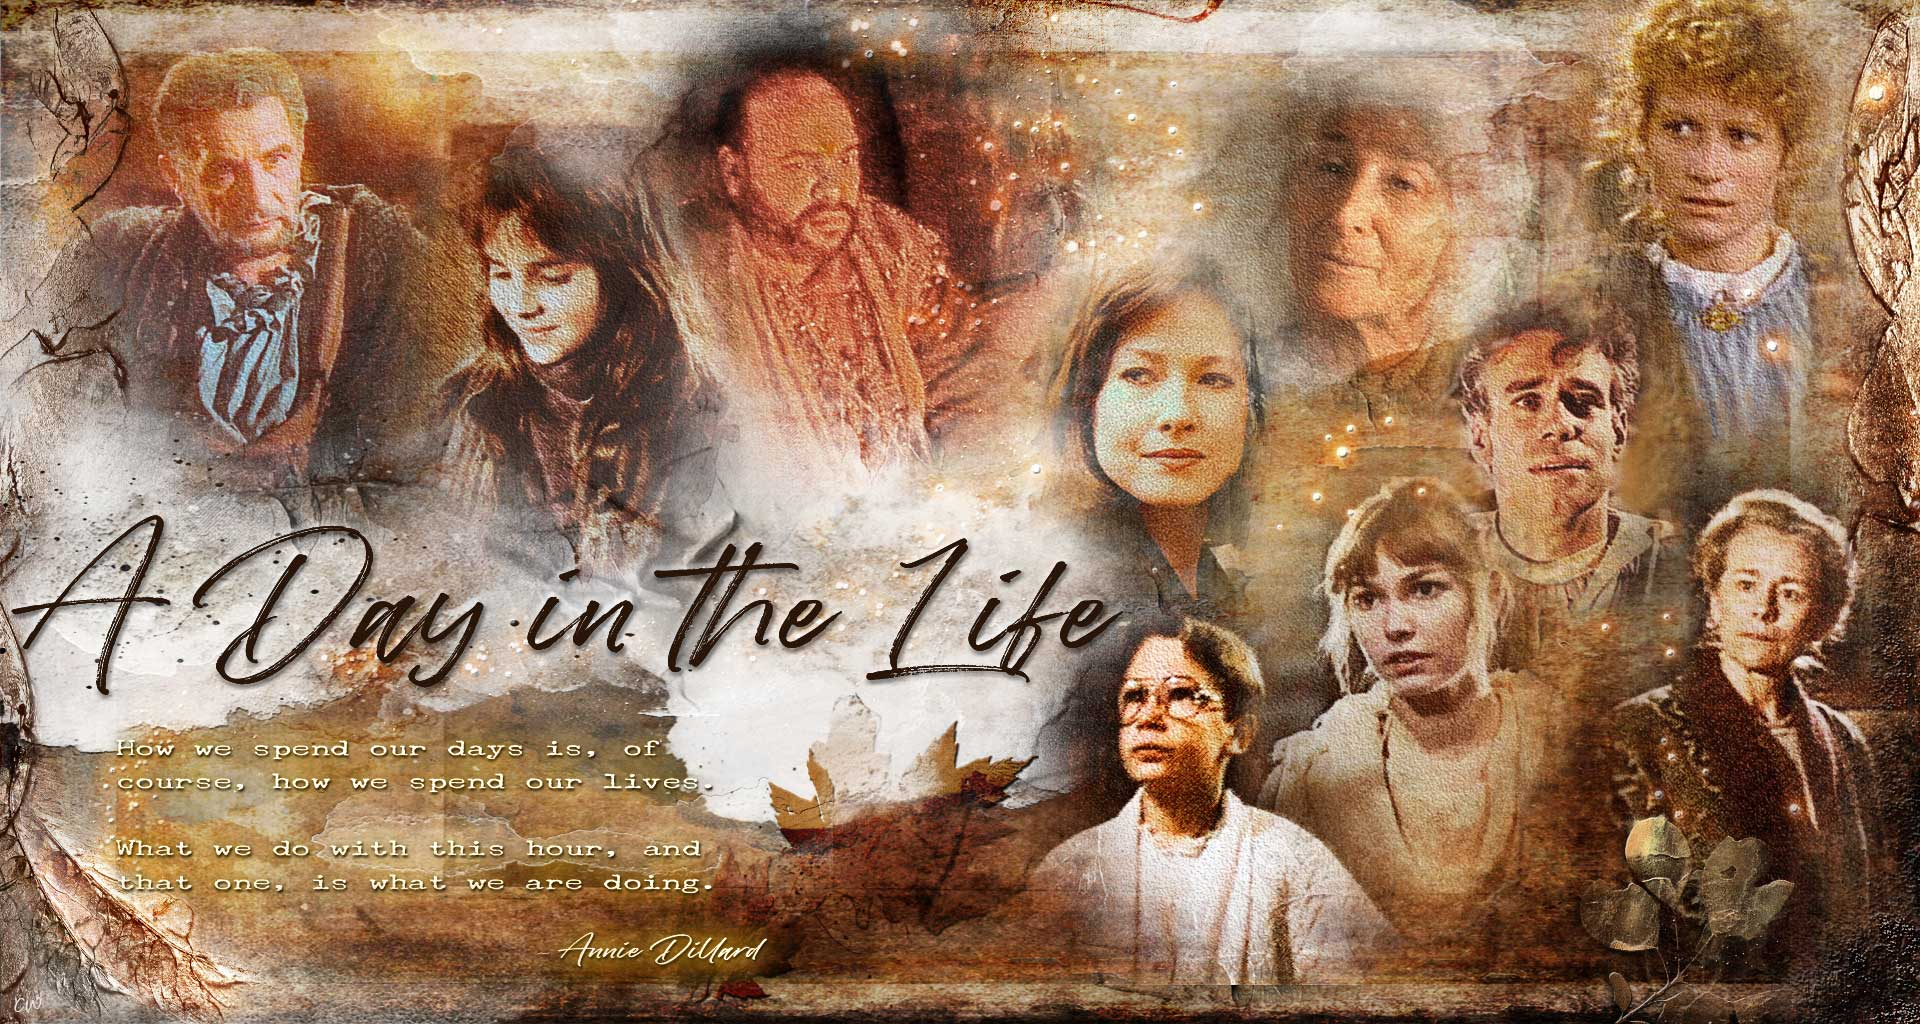 A Day in the Life wallpaper: 10 characters pictures. Father, Samantha, Winslow, Lisa, Elizabeth, Rebecca, Kanin, Mary, Jamie, and Eric. Test reads: A Day in the Life. How we spend our days is, of course, how we spend our lives. What we do with this hour, and that one, is what we are doing. Annie Dillard